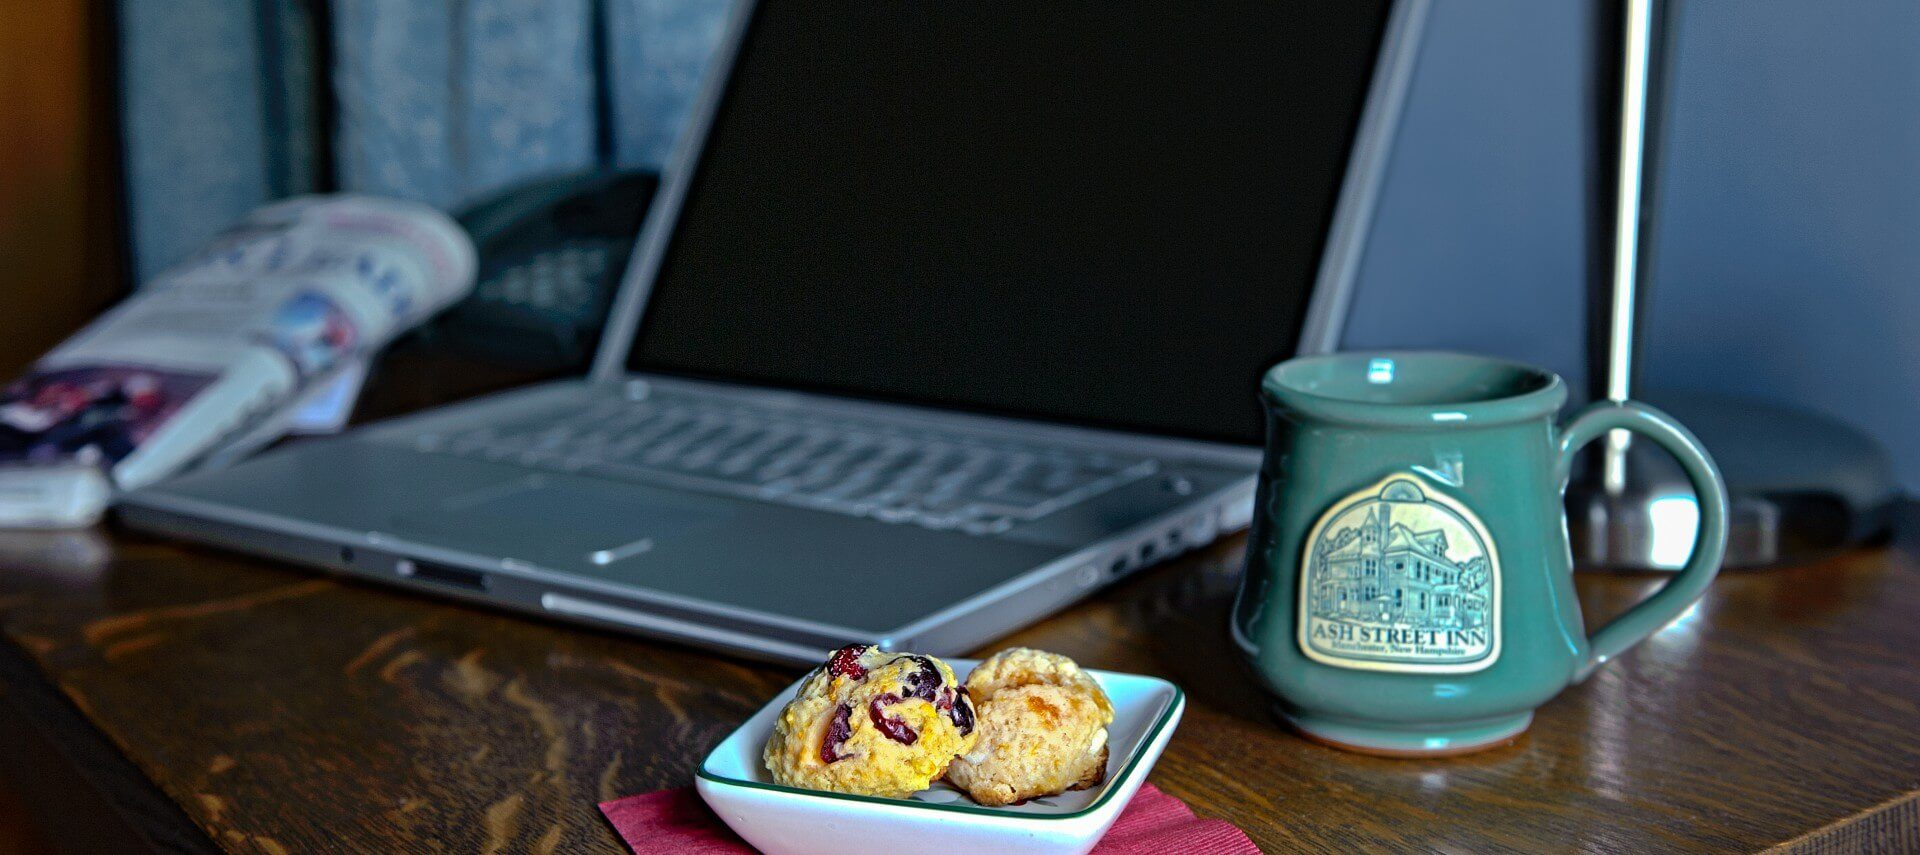 Brown desk with small plate of scones, green ceramic mug and an open silver laptop.